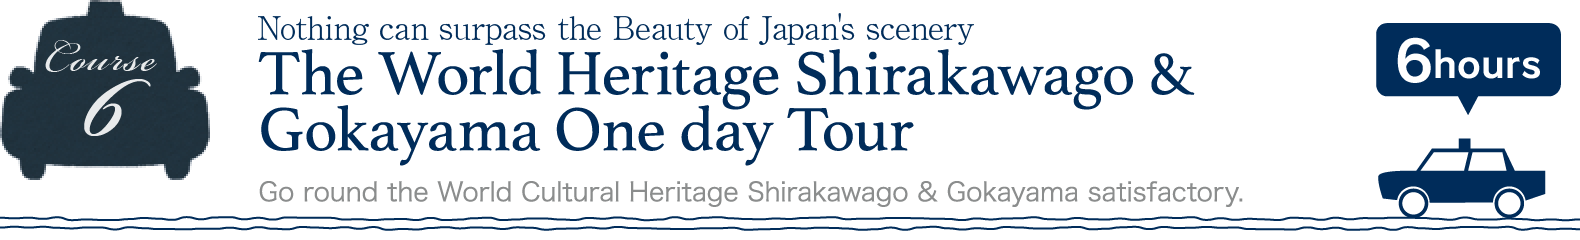 The World Heritage Shirakawago & Gokayama One day Tour